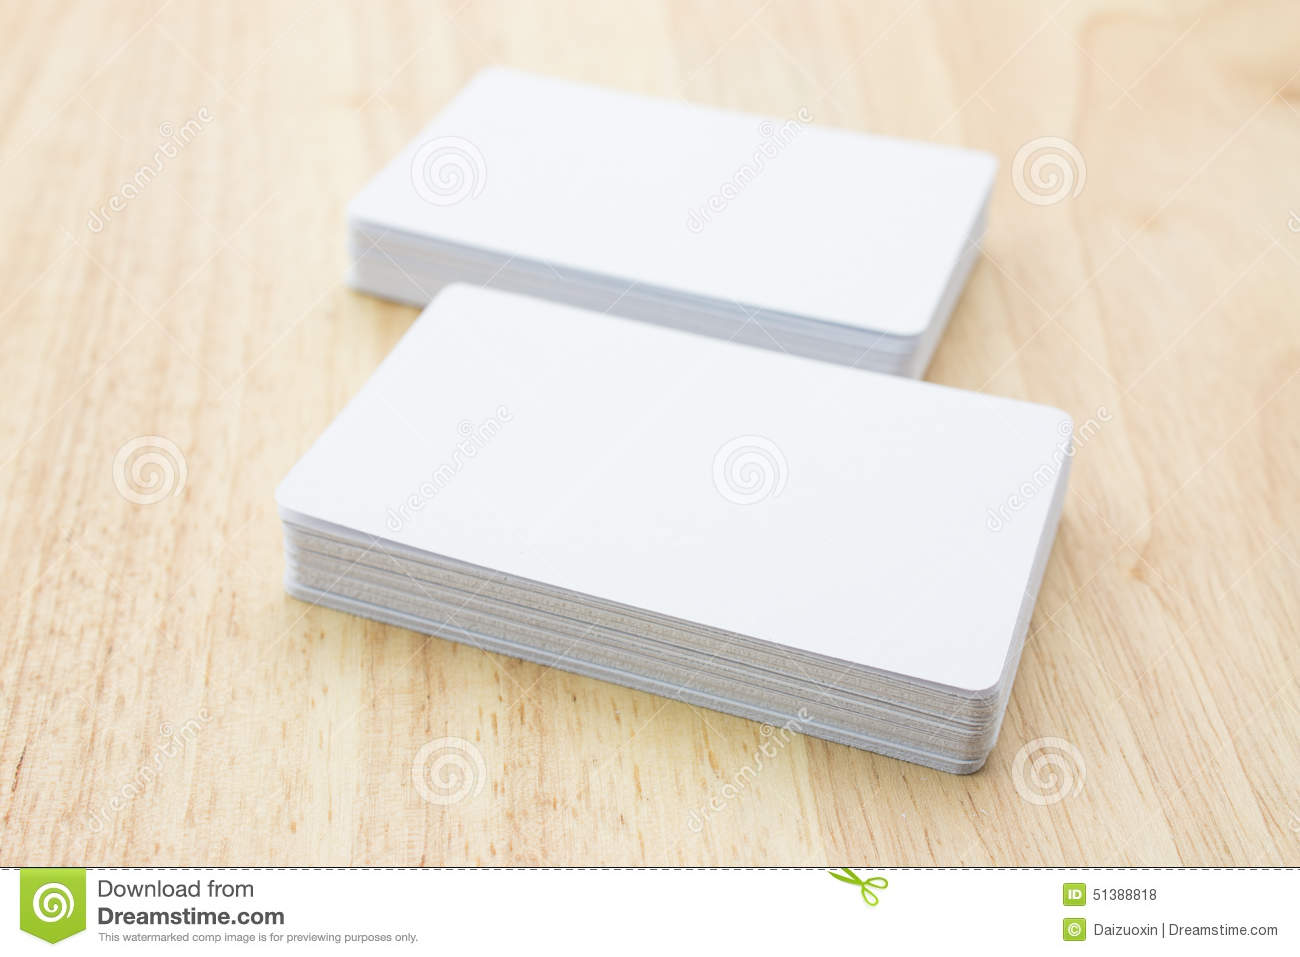 Blank business cards stock photo. Image of card, layer - 51388818